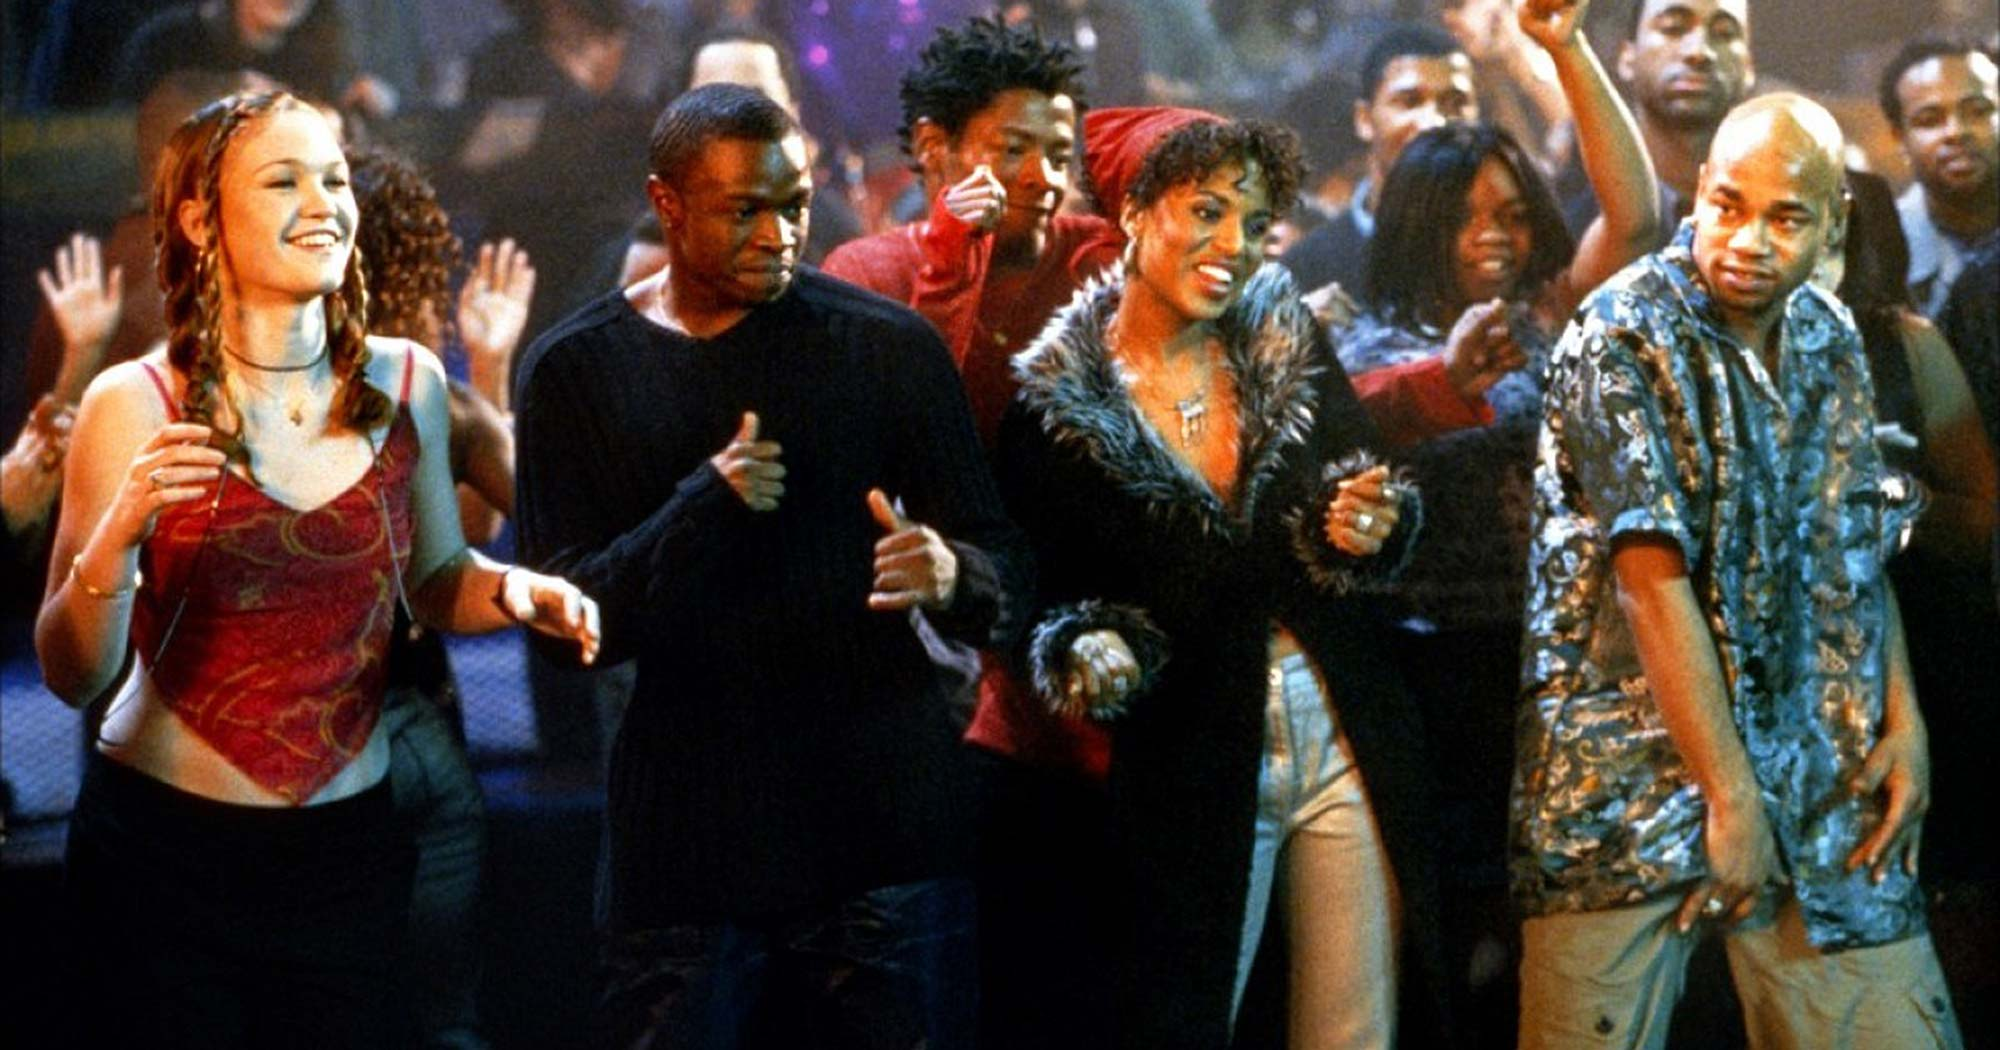 Save The Last Dance 15th Anniversary Review